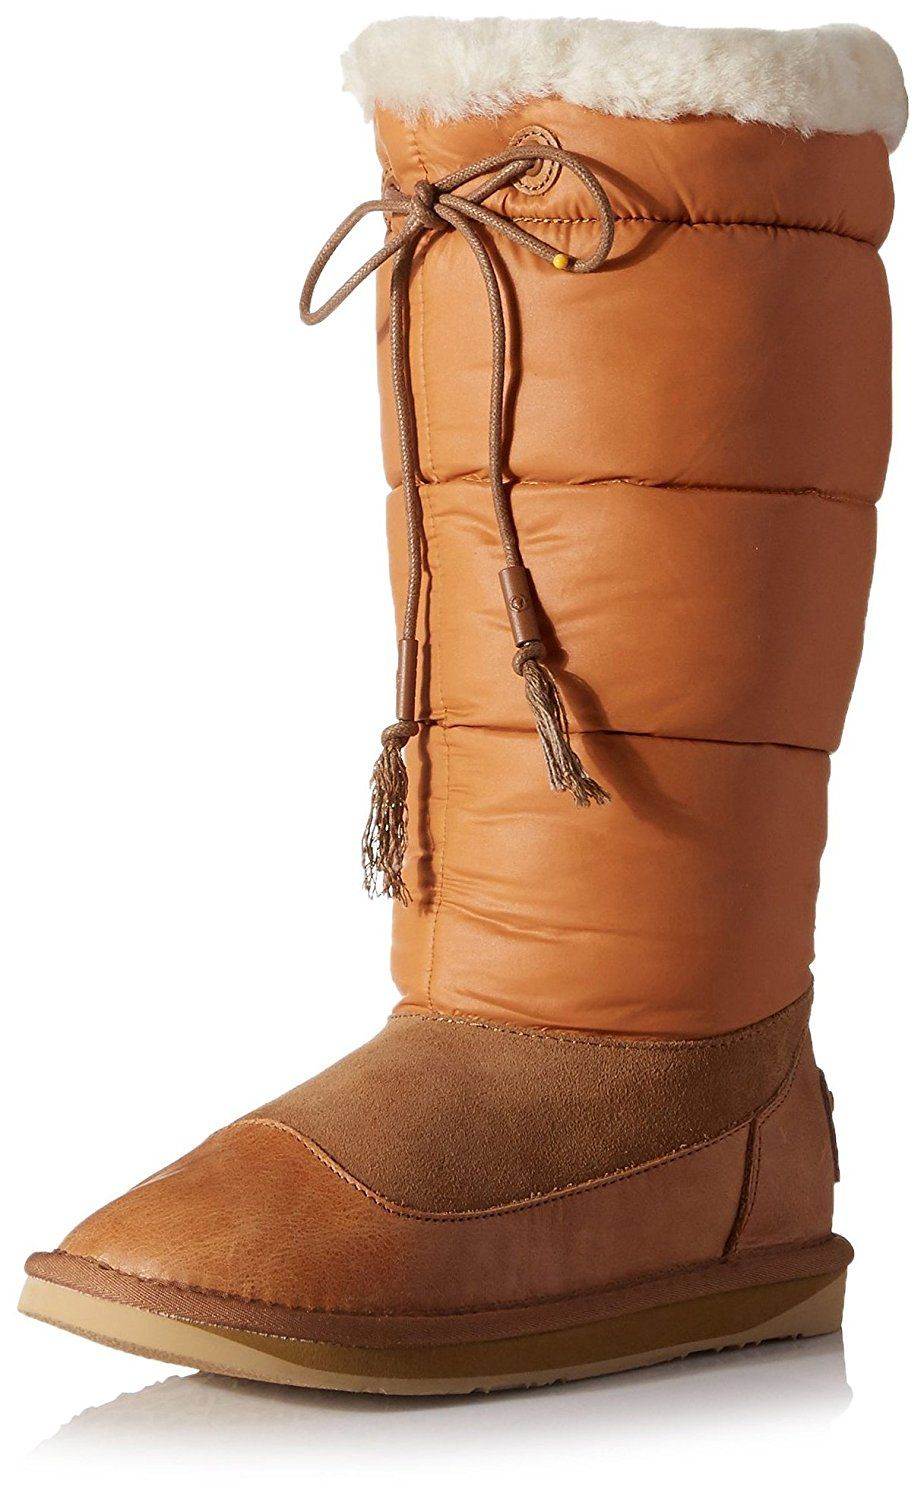 Pin On Women S Winter Boots